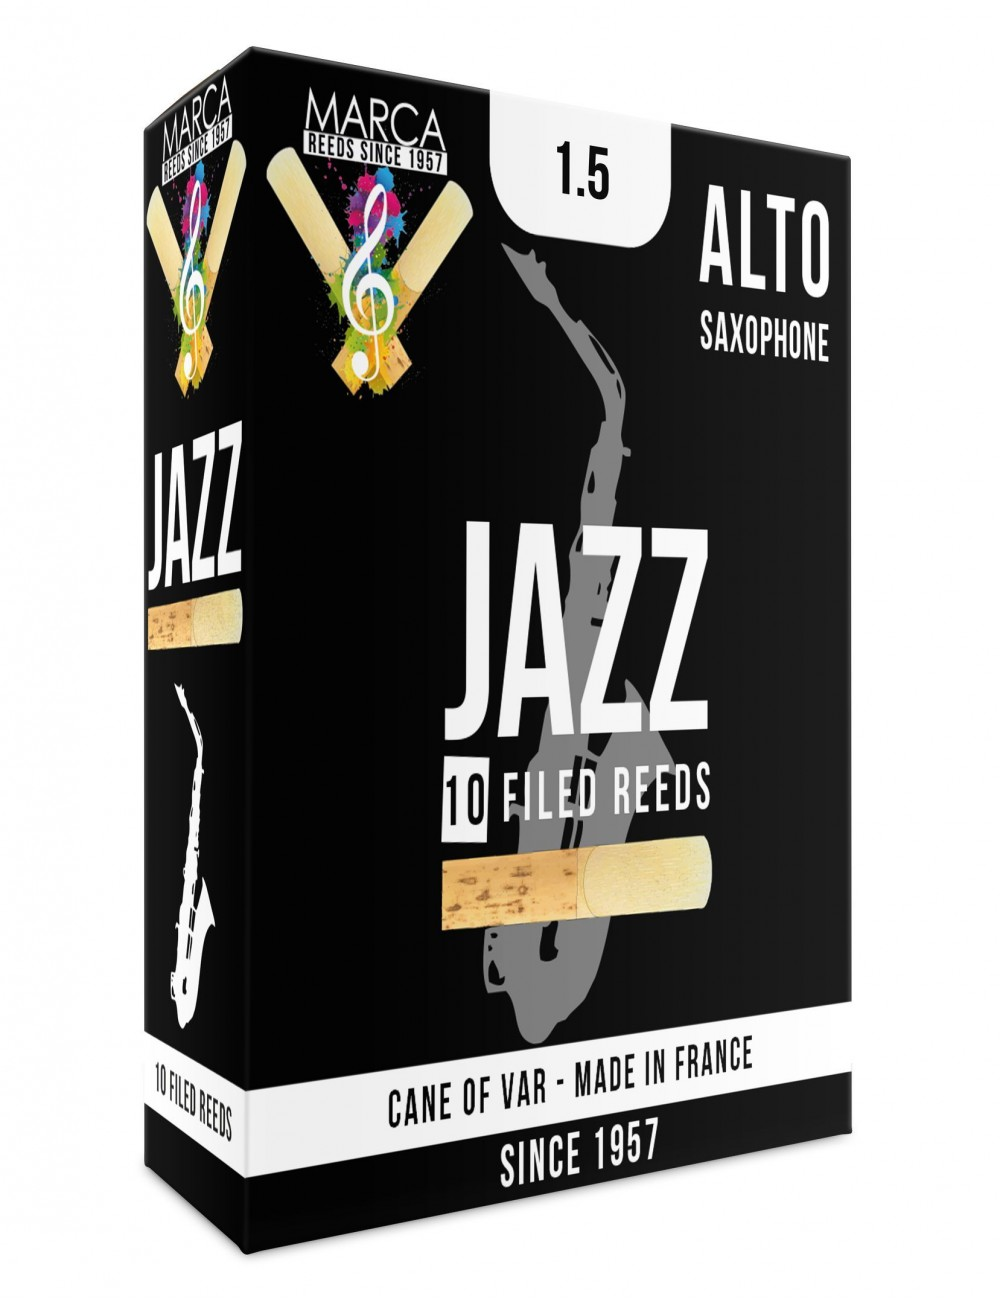 10 ANCHES MARCA JAZZ FILED SAXOPHONE ALTO 1.5